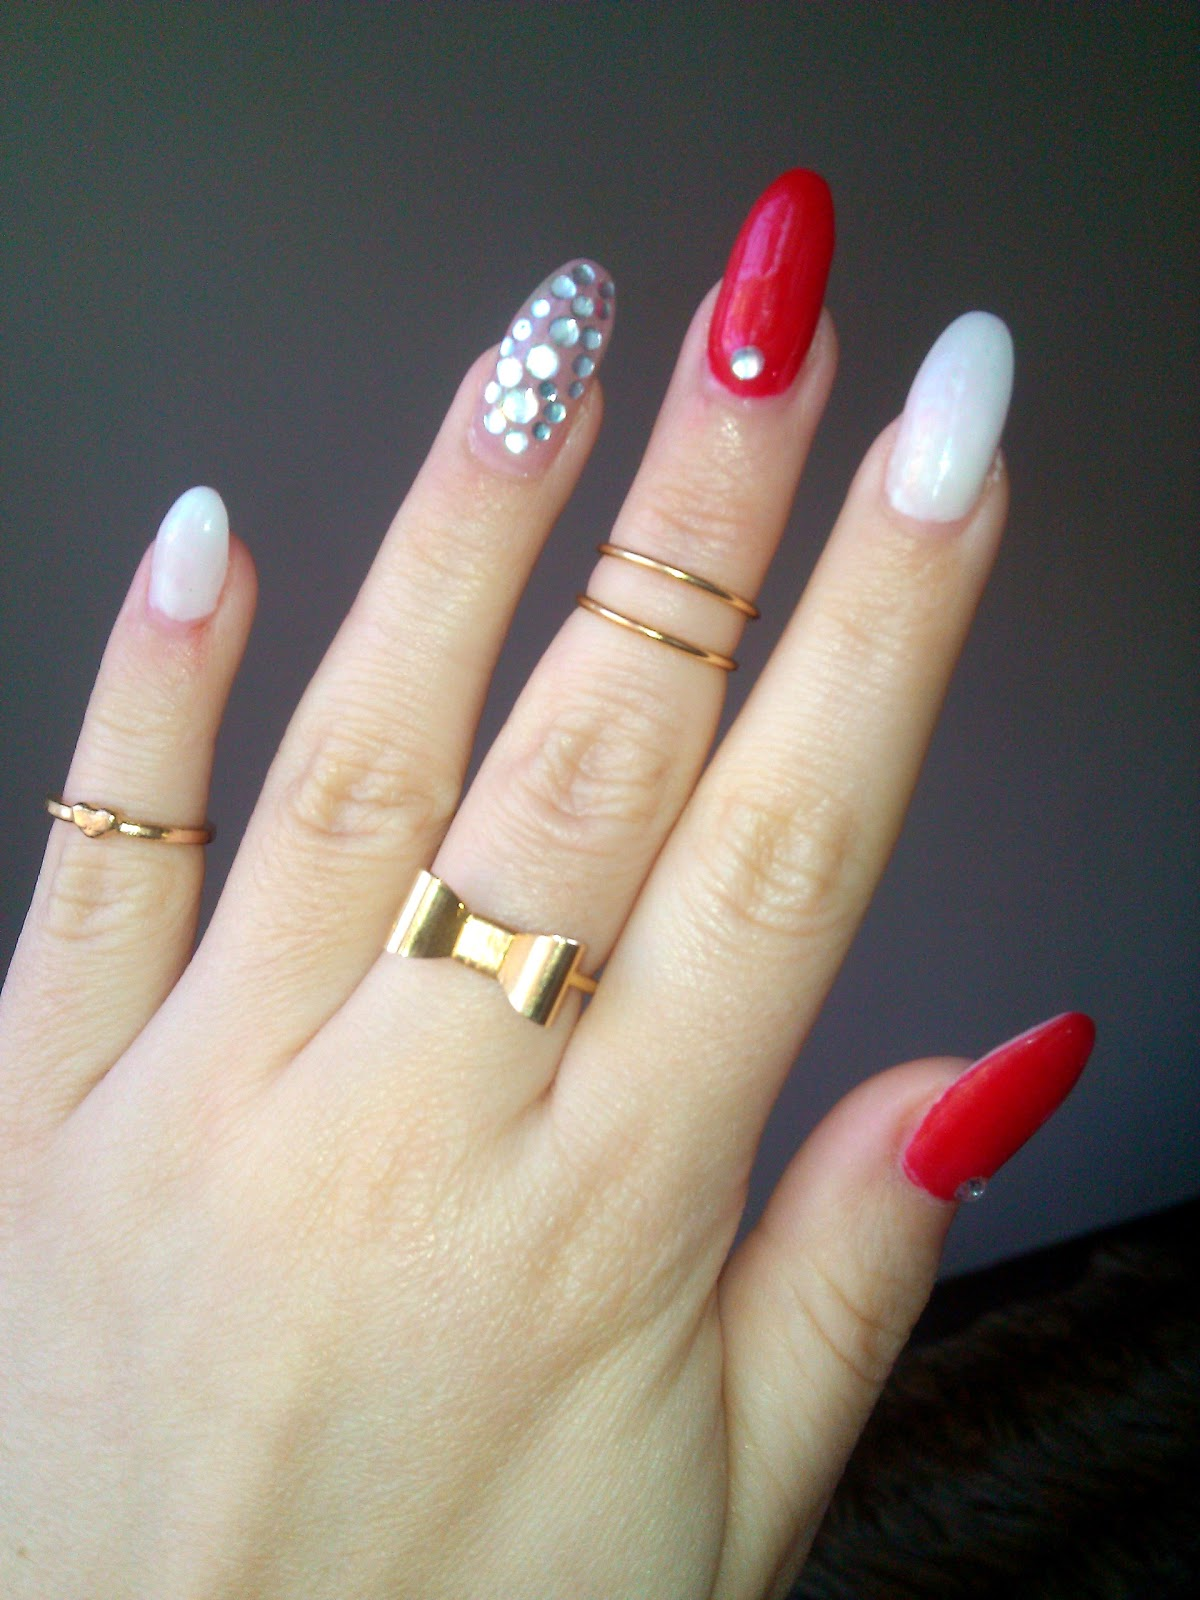 gold midi rings, red stiletto nails, stiletto nails, stiletto nails with rhinestones, white stiletto nails